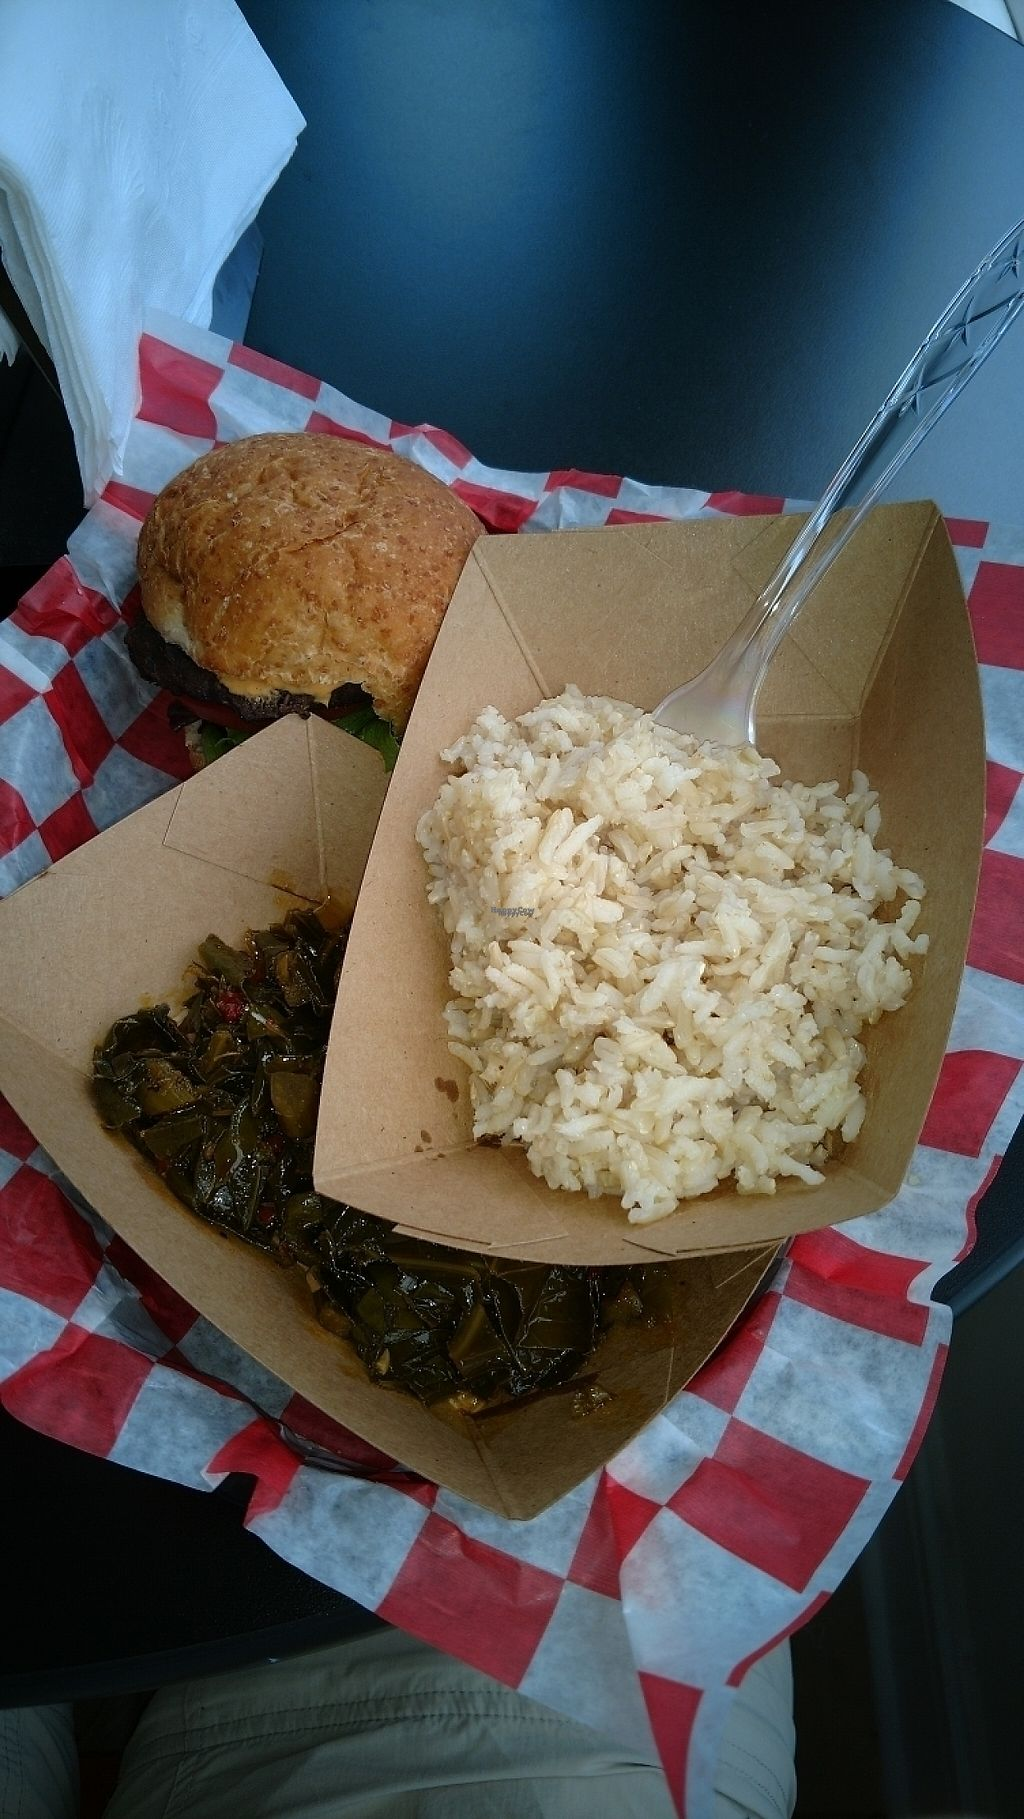 """Photo of Natural Selections Cafe  by <a href=""""/members/profile/nathanb"""">nathanb</a> <br/>1/2 Black Bean Burger, collards and brown rice <br/> March 25, 2017  - <a href='/contact/abuse/image/88434/240852'>Report</a>"""